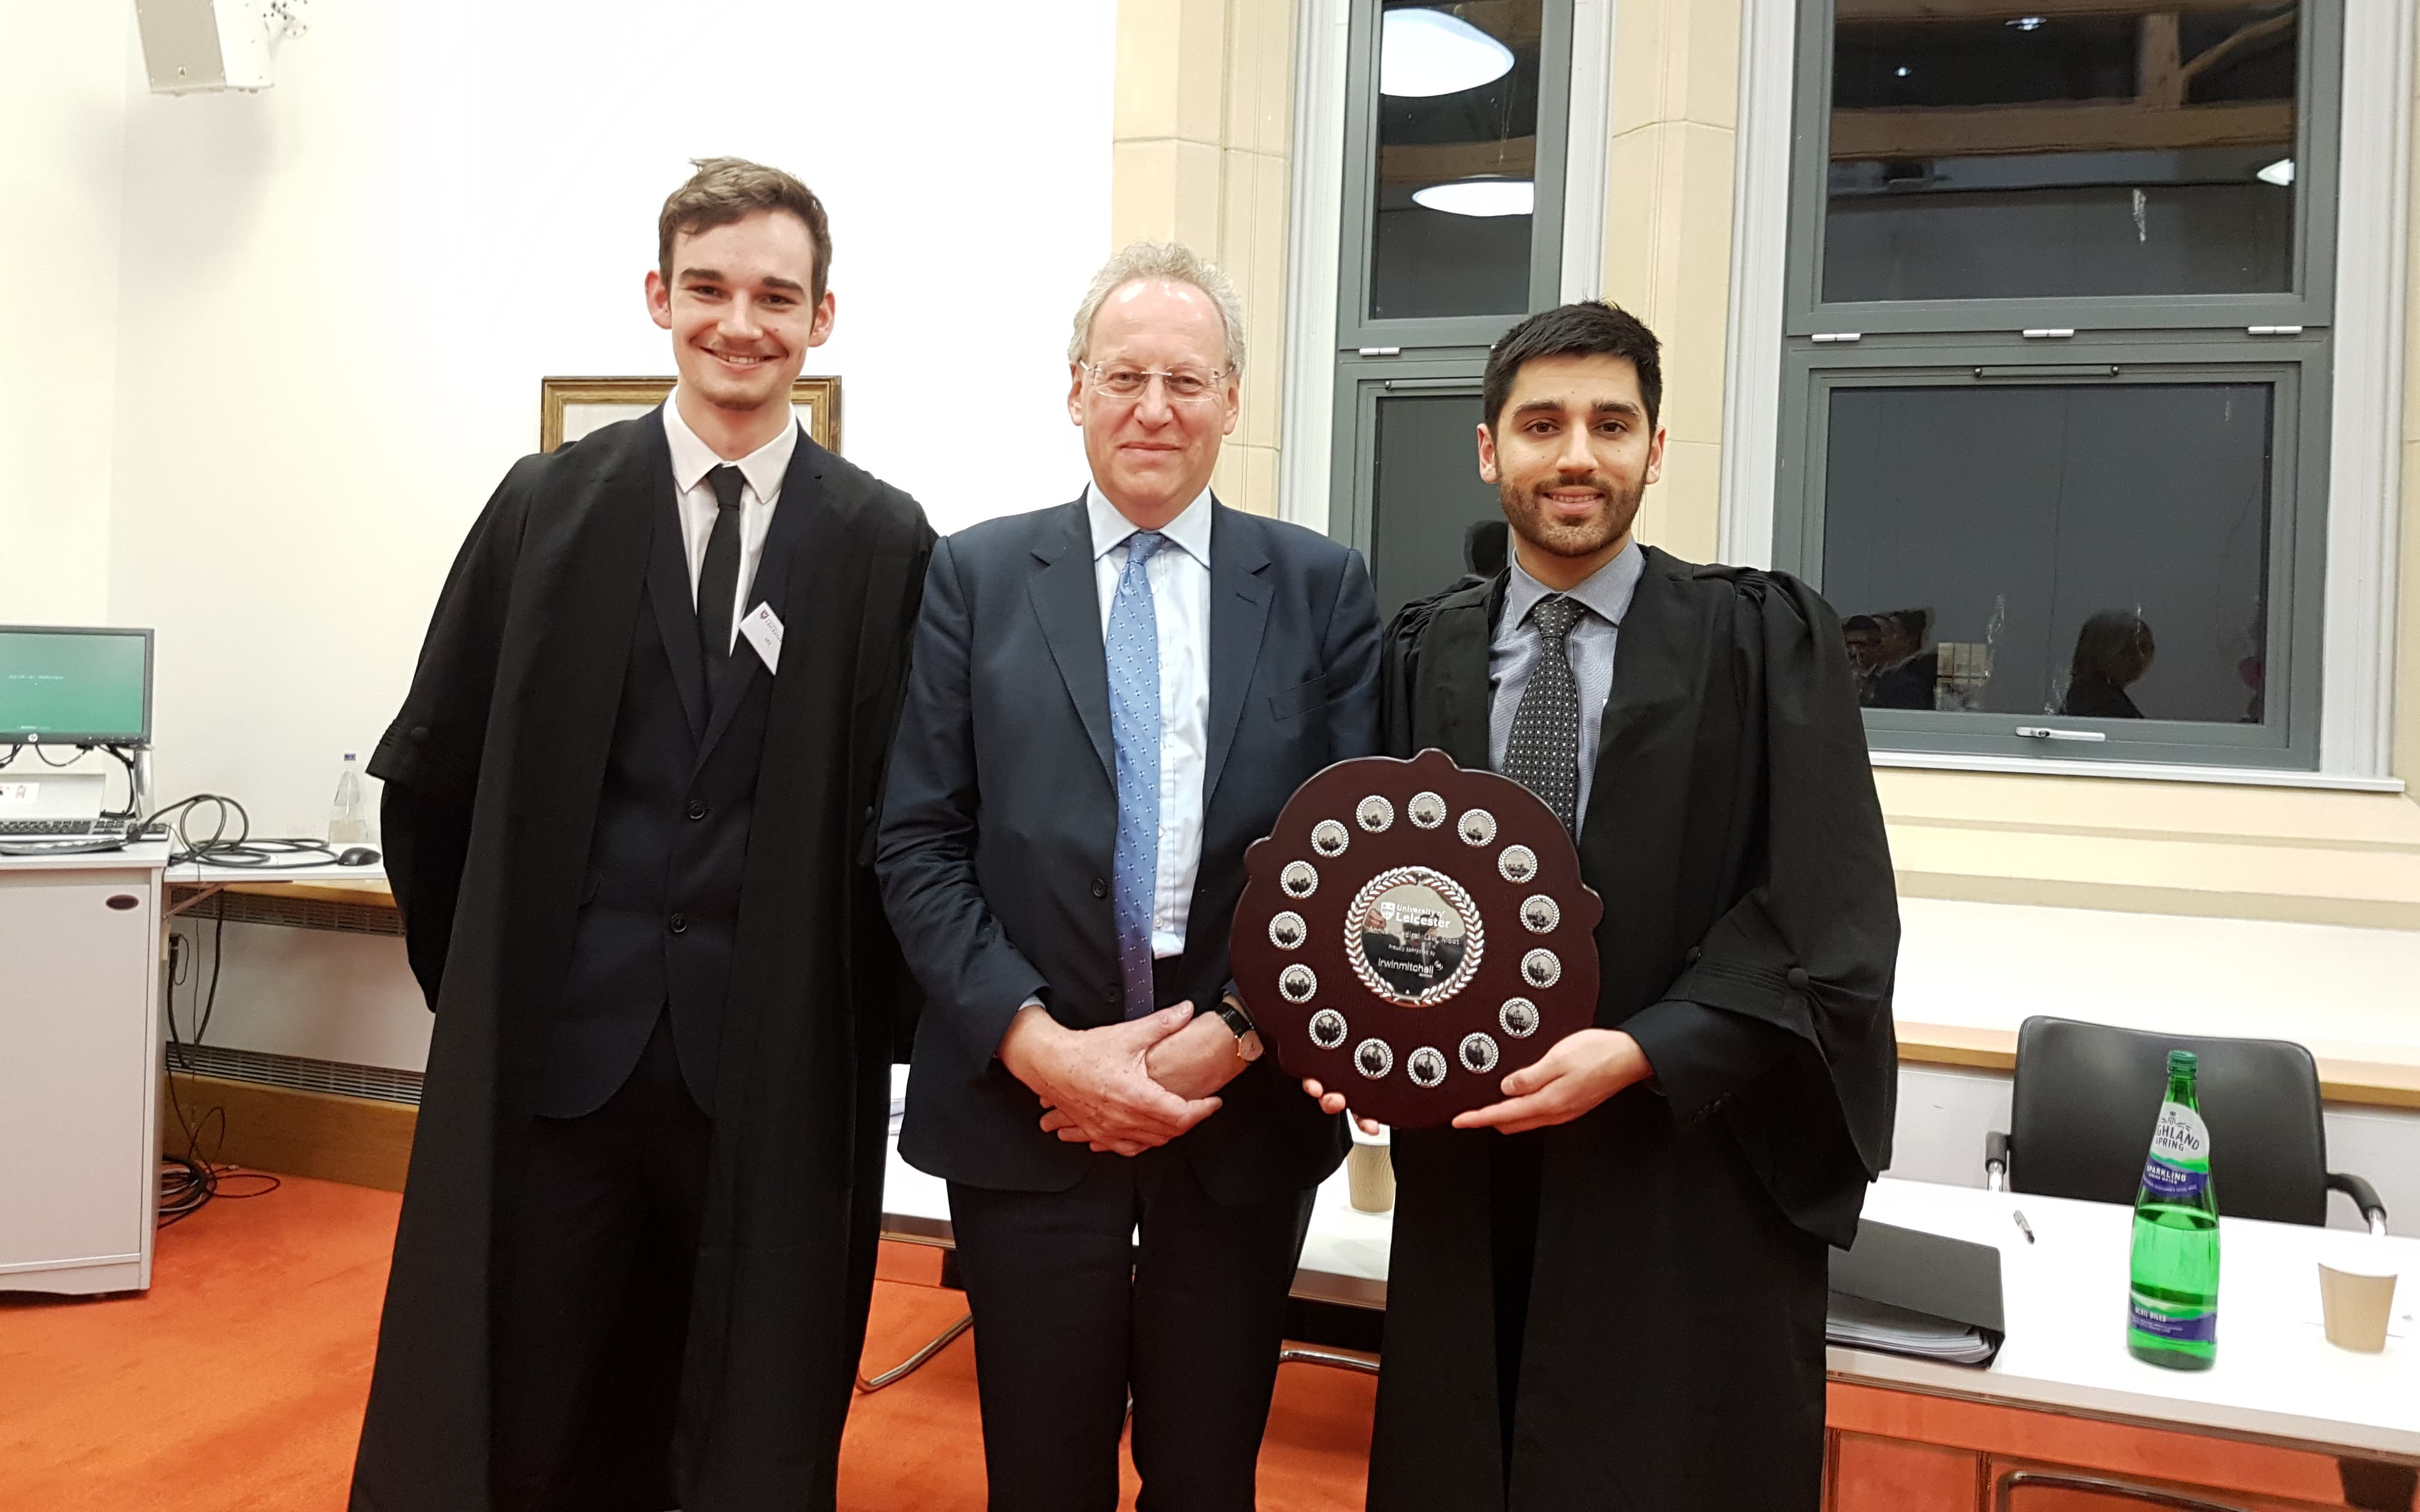 James Witherspoon, Mr Justice Nicholas Green and Sapan Maini-Thompson